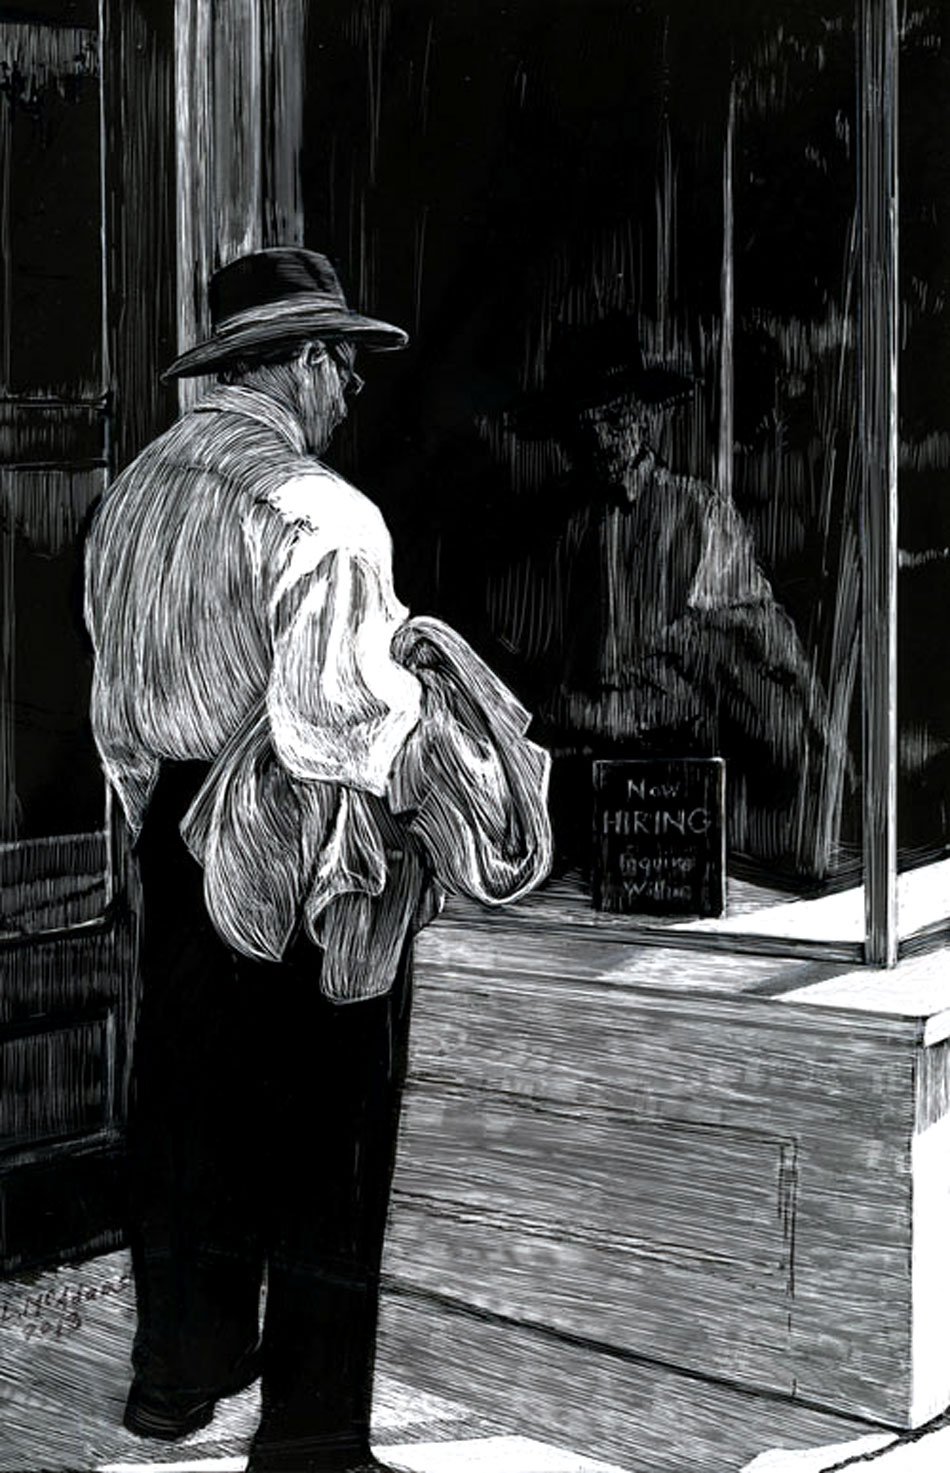 man in hat holding coat looking at now hiring sign in store window scratchboard drawing